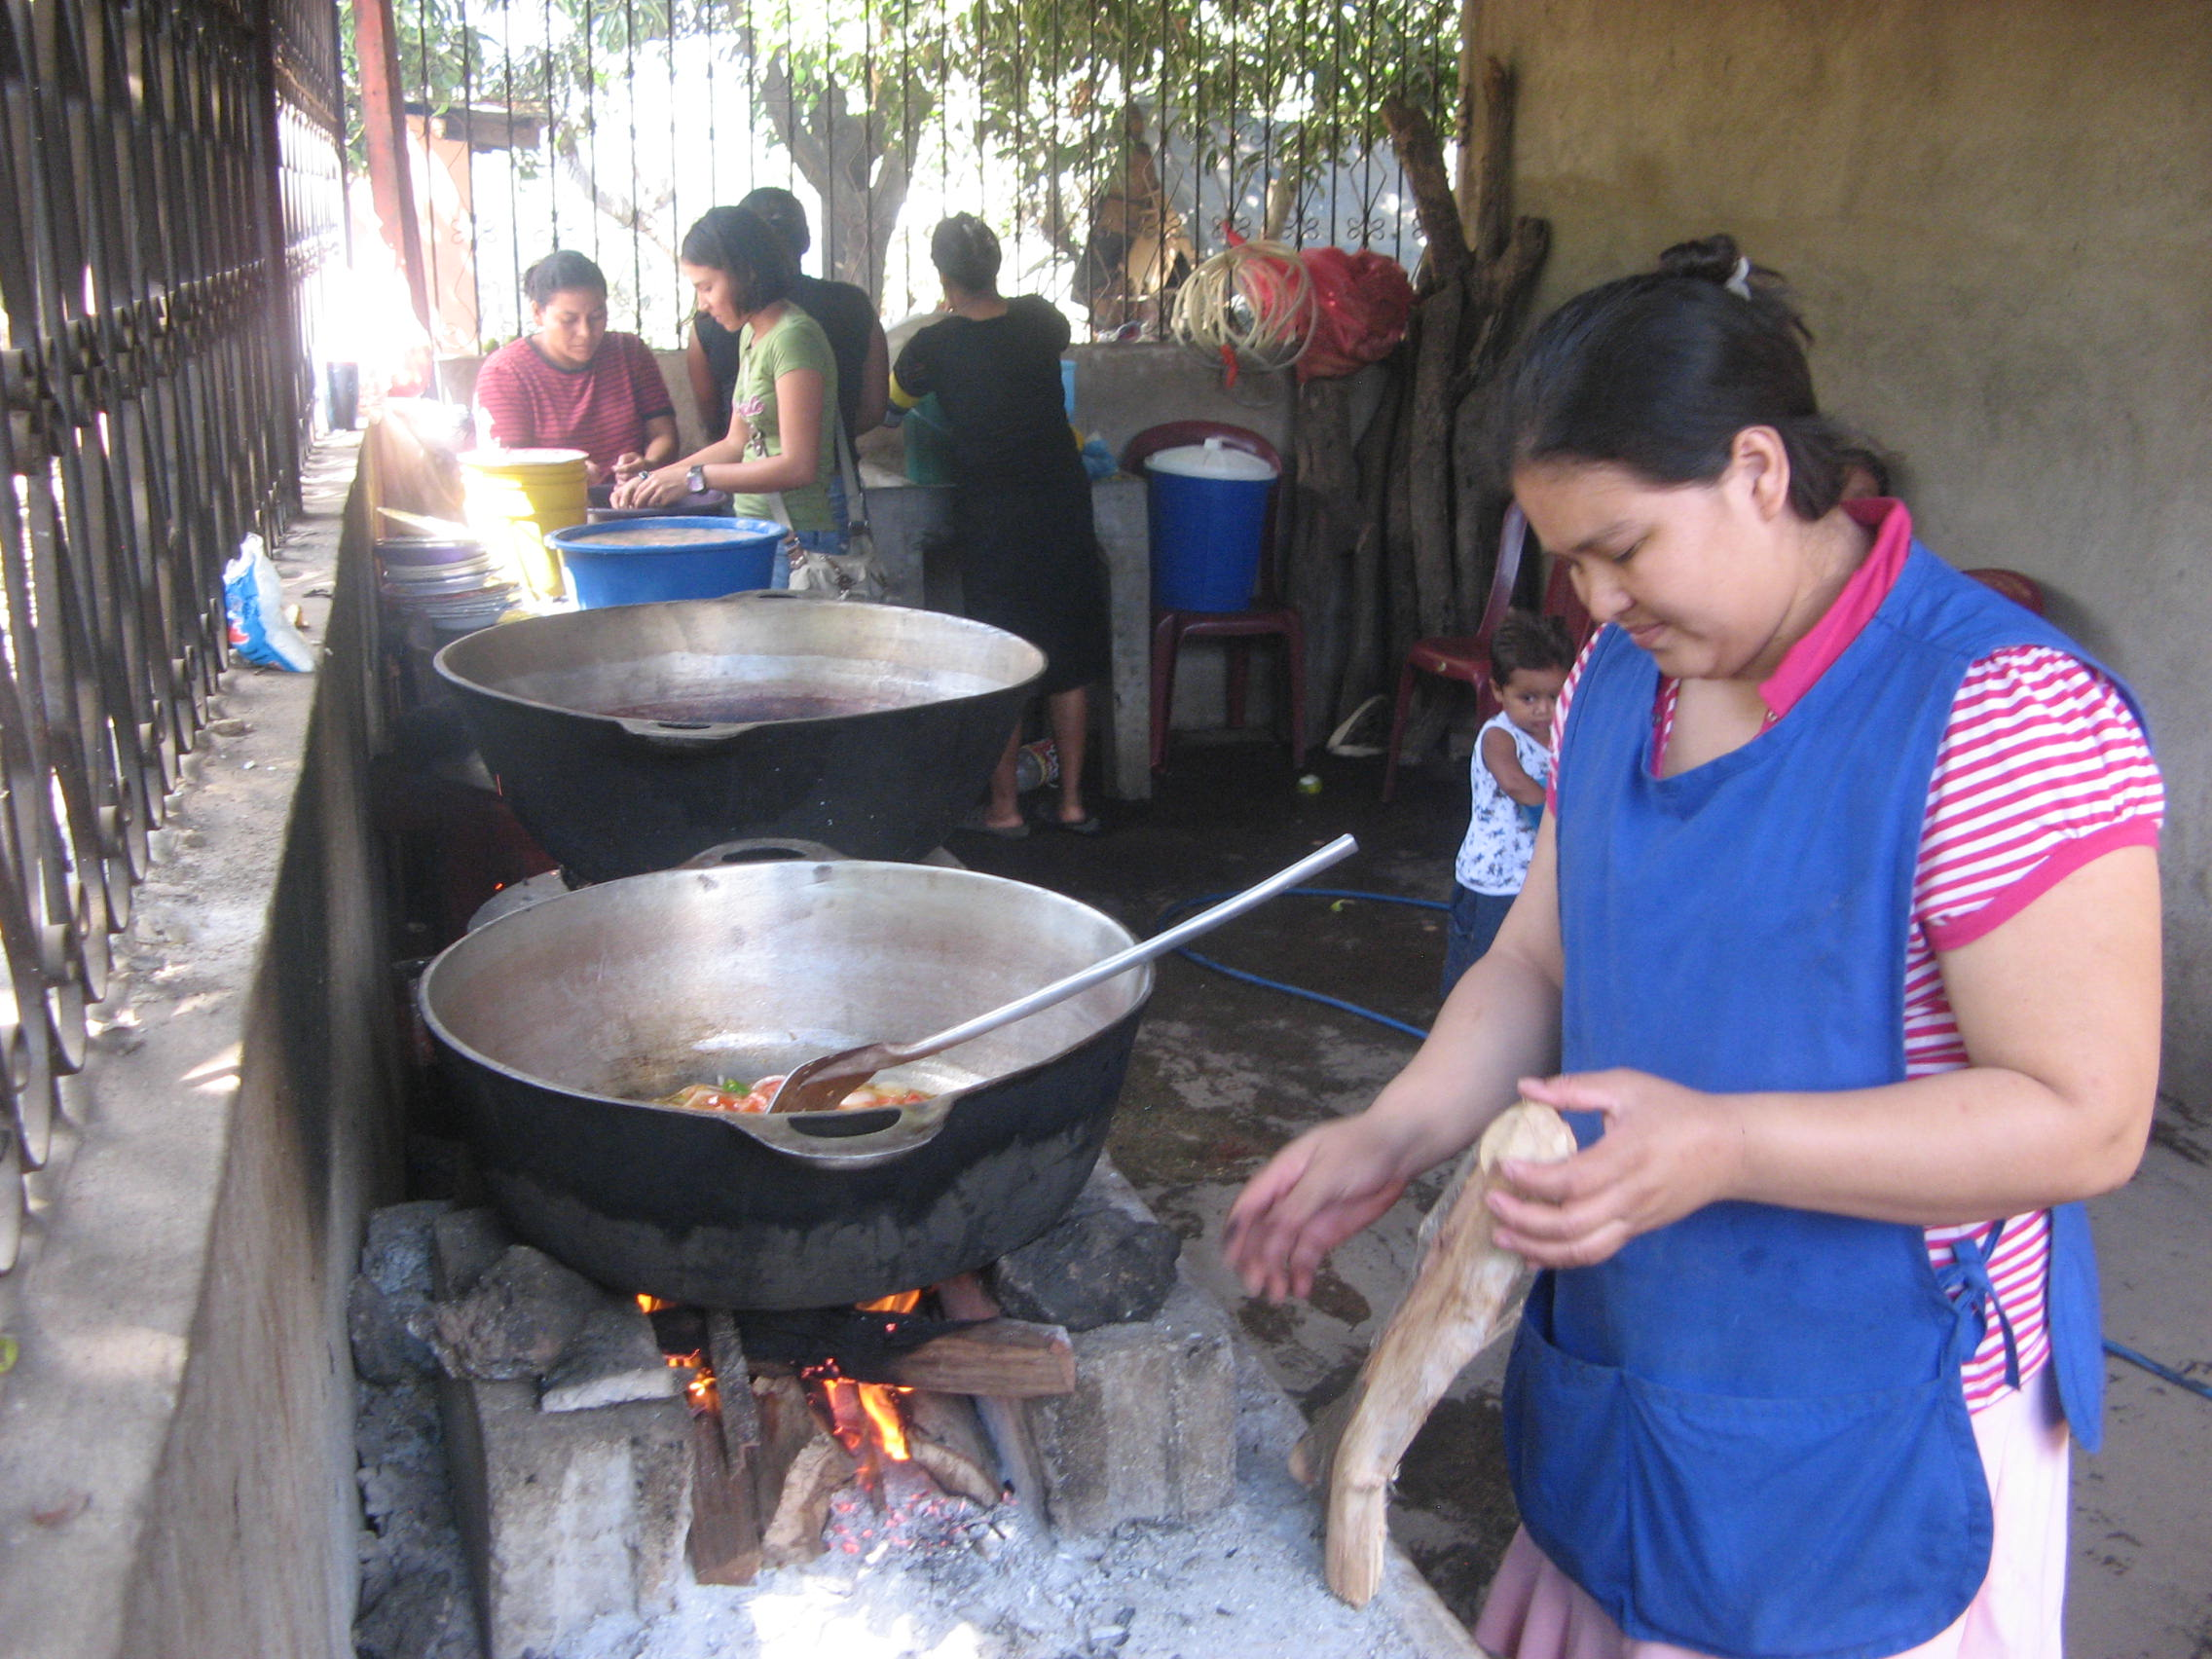 A Mother Preparing the Meal